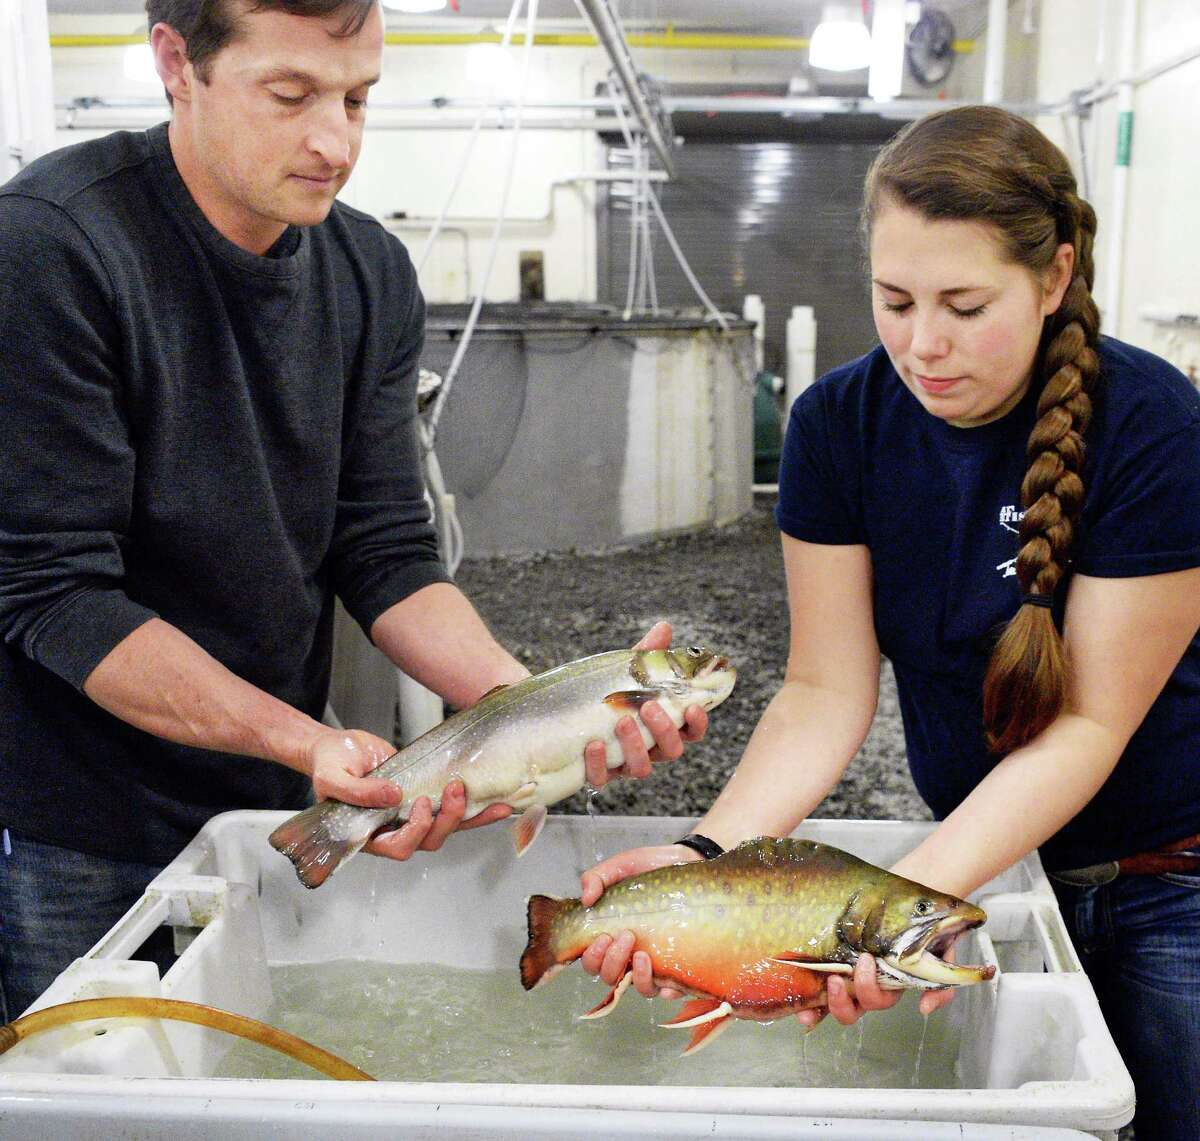 SUNY Cobleskill fisheries and aquaculture seniors Edward Perri, left, and Samantha Carey with cross-bred Arctic char and brook trout in the school's cold water hatchery Wednesday April 27, 2016 in Cobleskill, NY. (John Carl D'Annibale / Times Union)